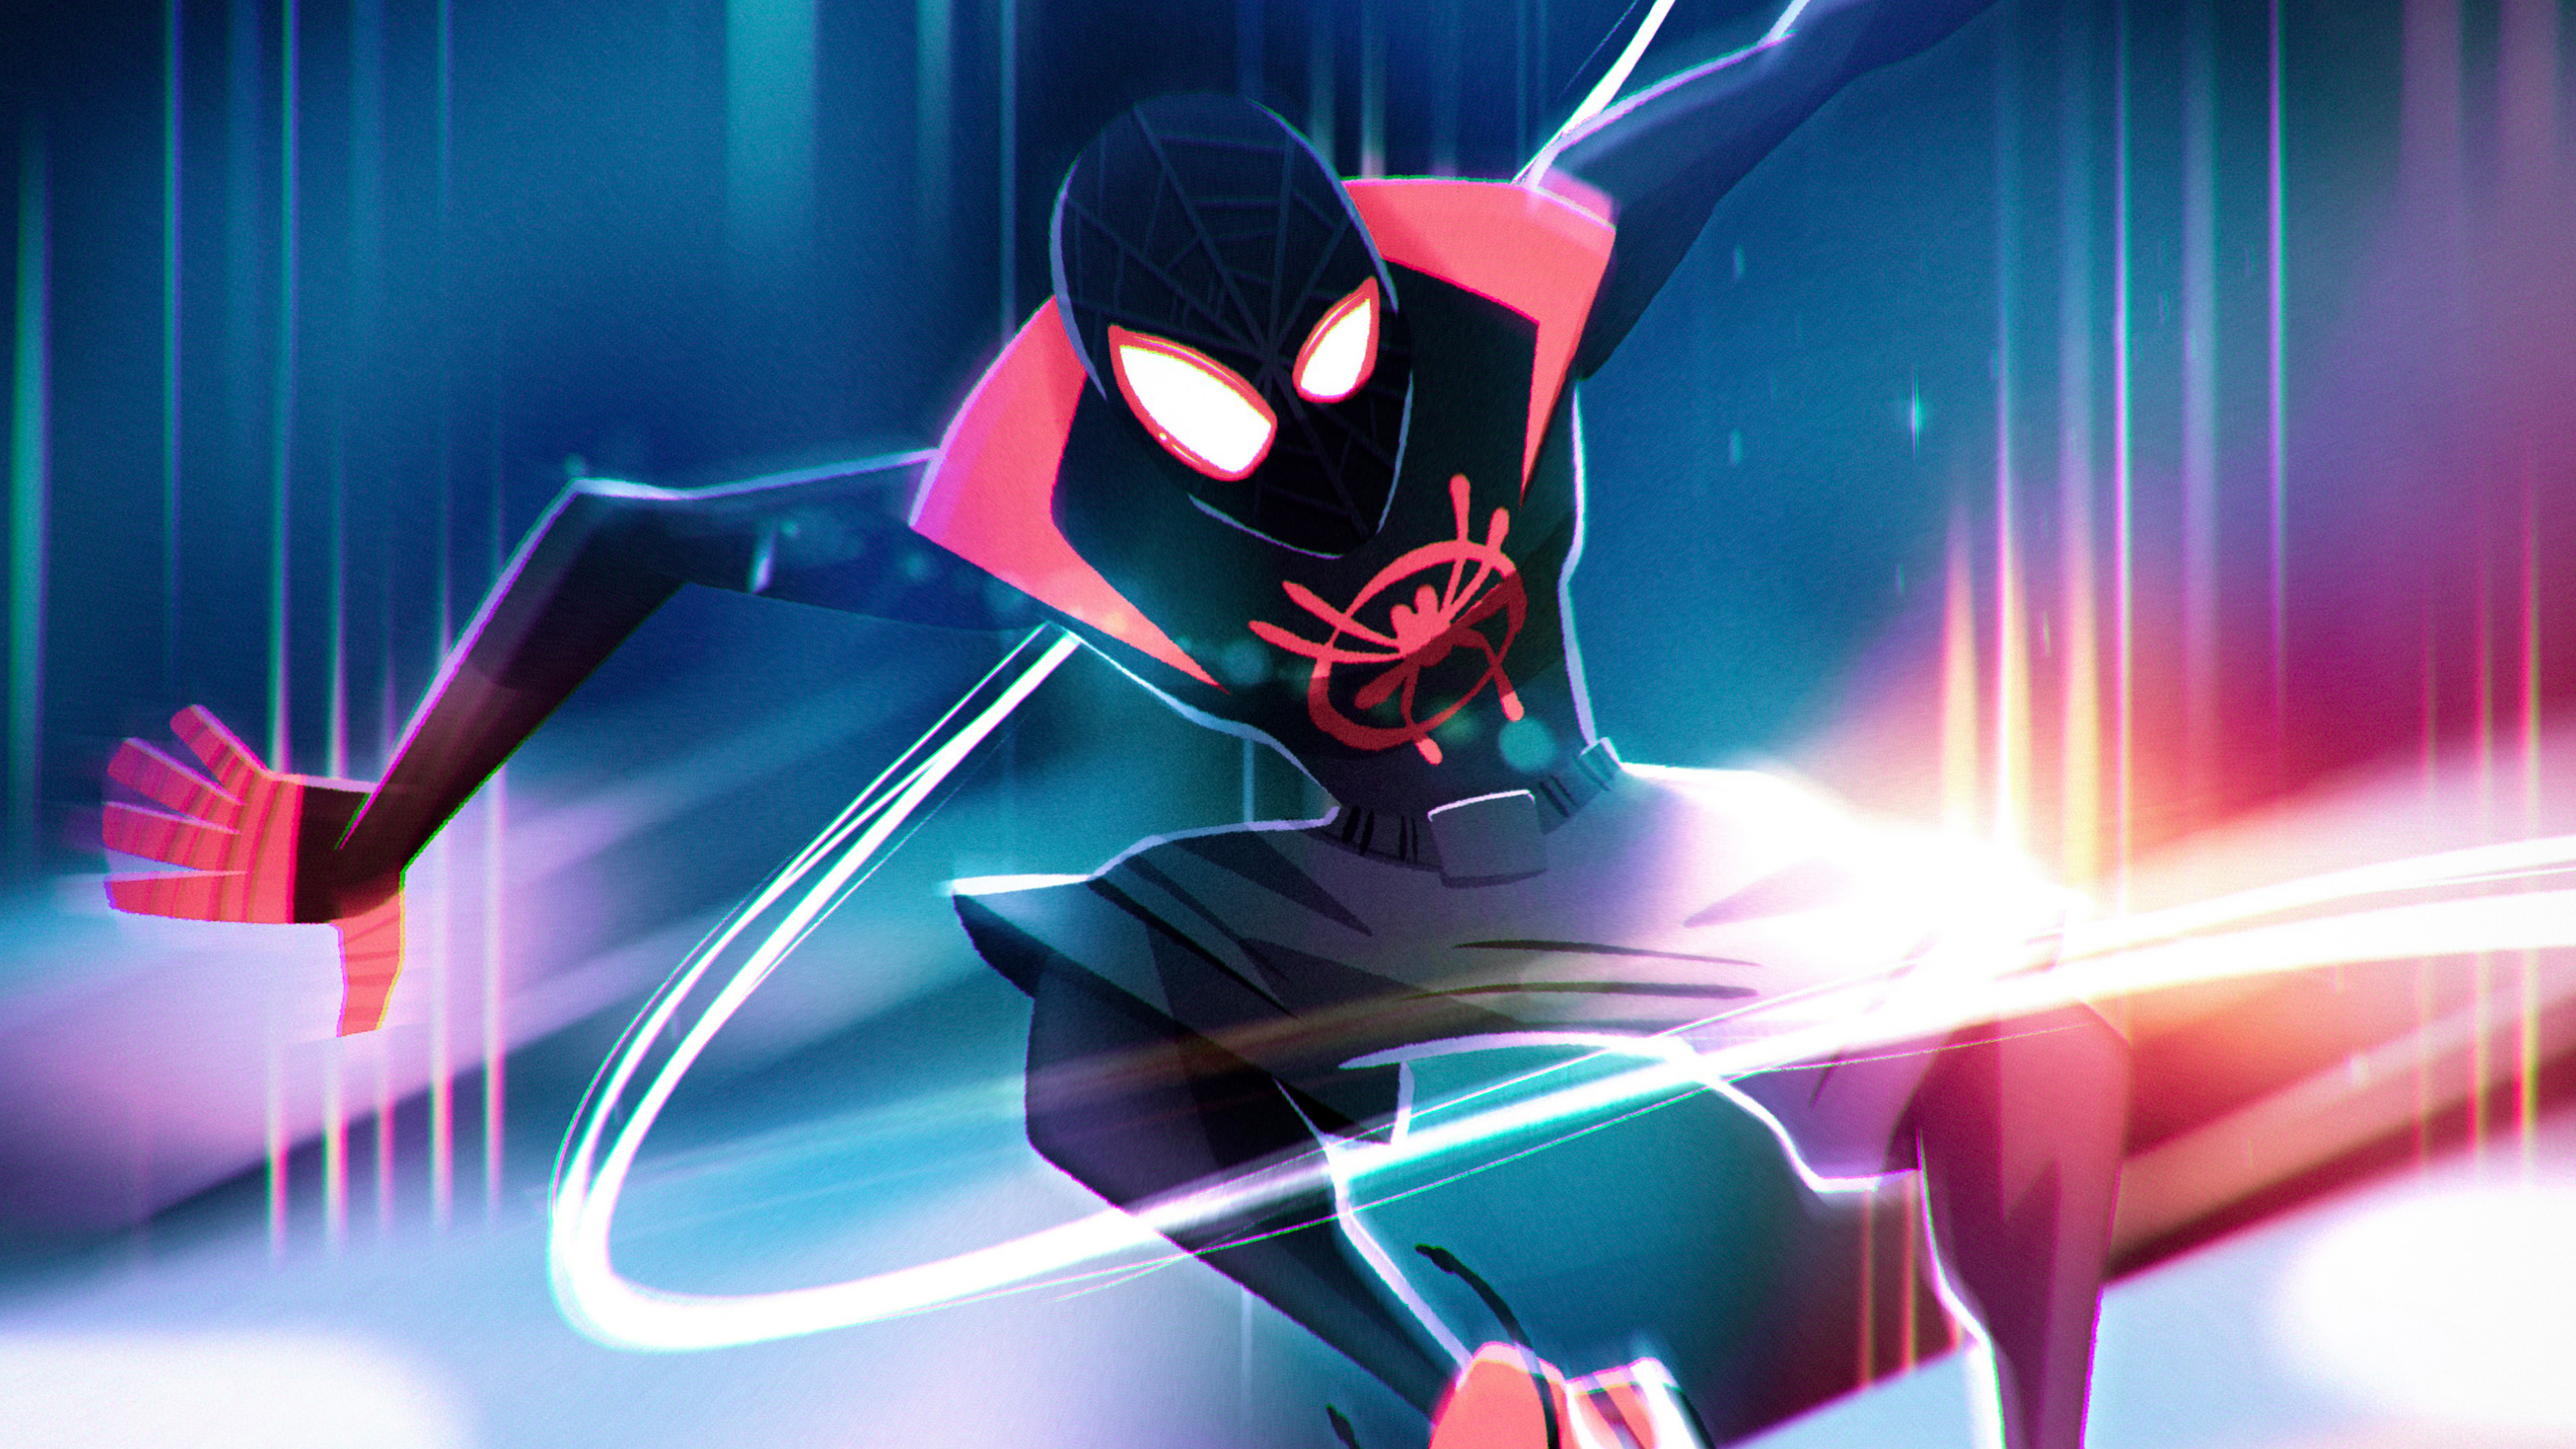 Spider Man Into The Spider Verse Artwork Wallpapers Hd Wallpapers